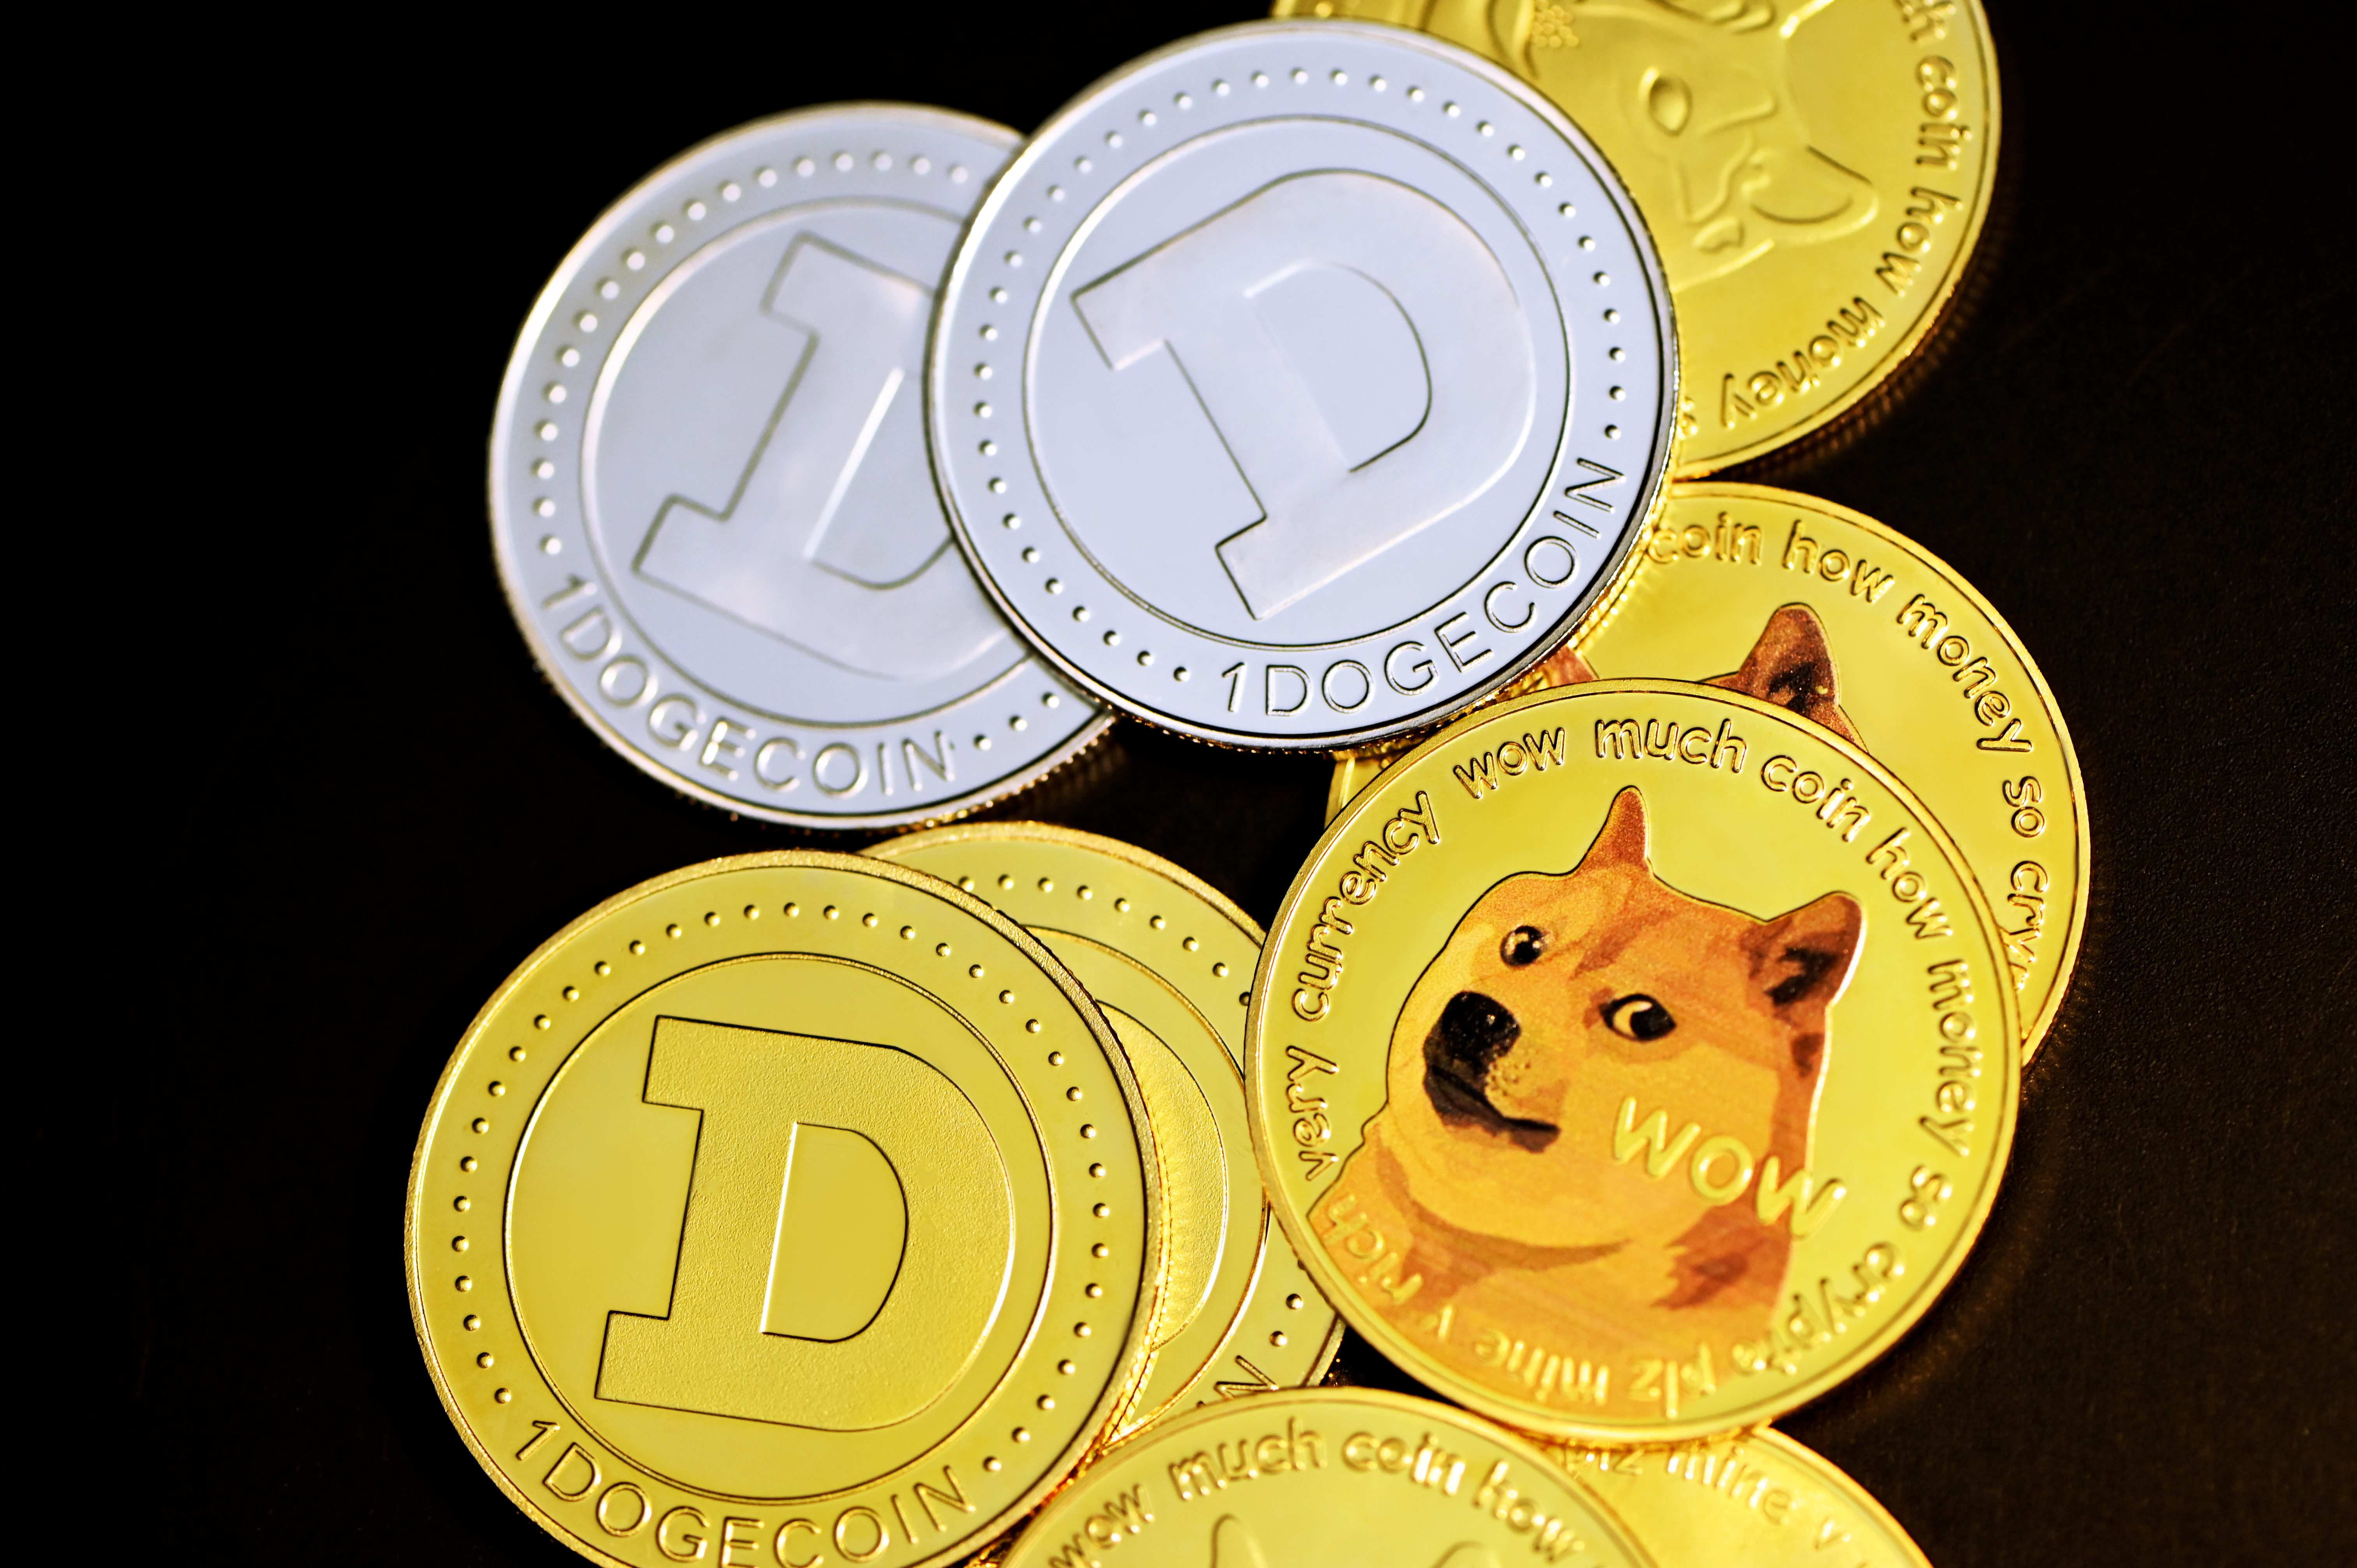 A pile of scattered Dogecoins on top of a black background.